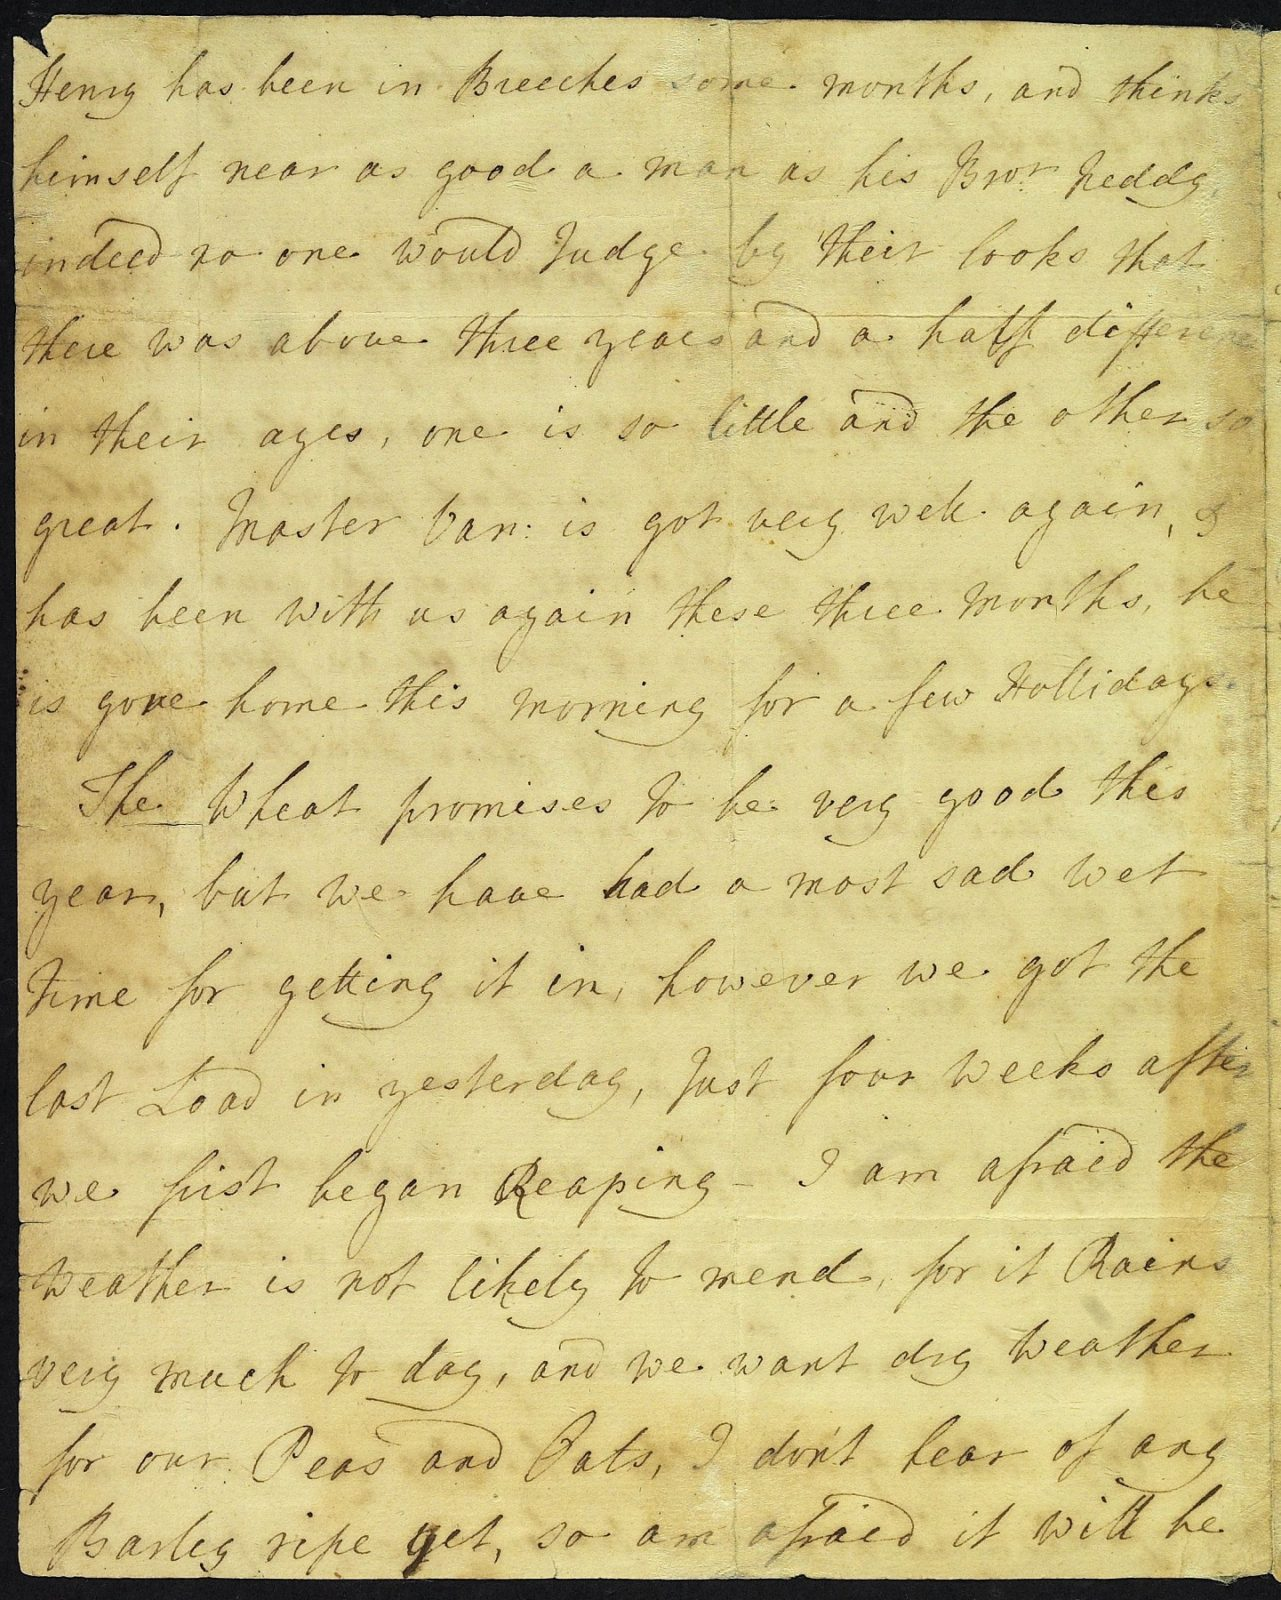 Letter from Mrs Austen to Mrs Walter, 20 August 1775, page 2